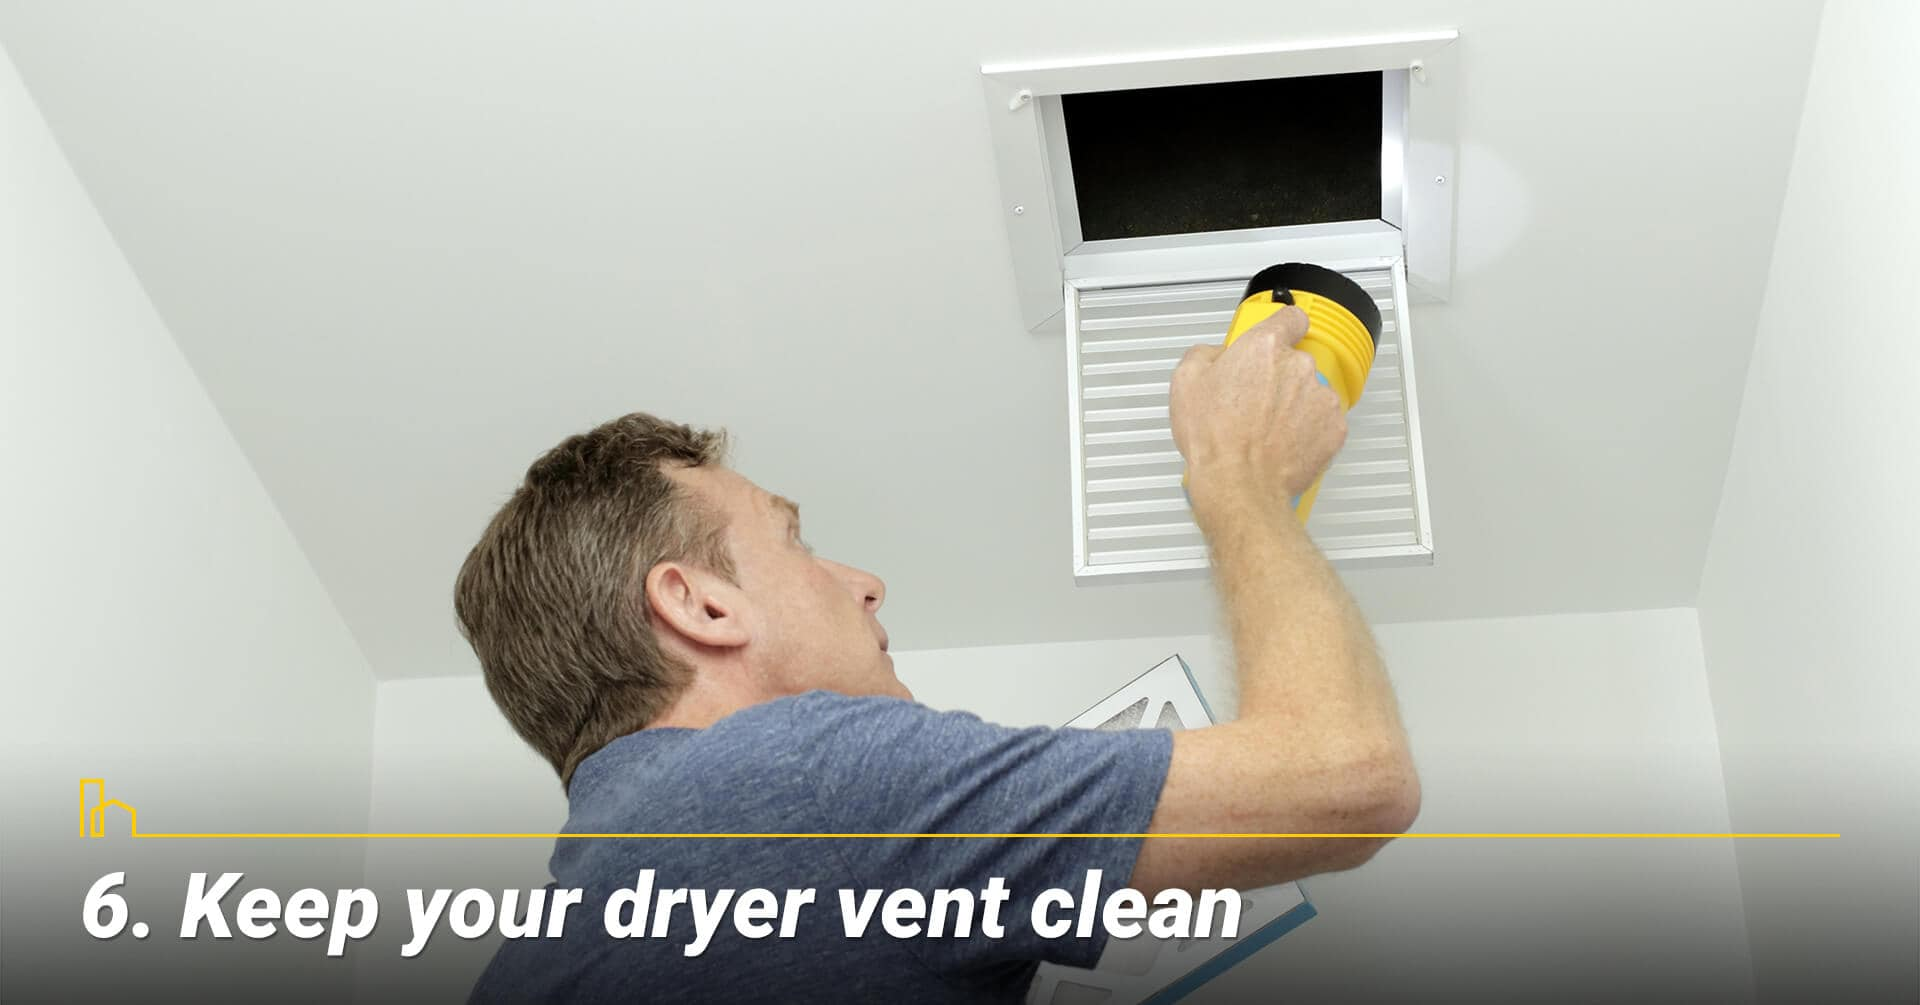 Keep your dryer vent clean, clean dryer vent